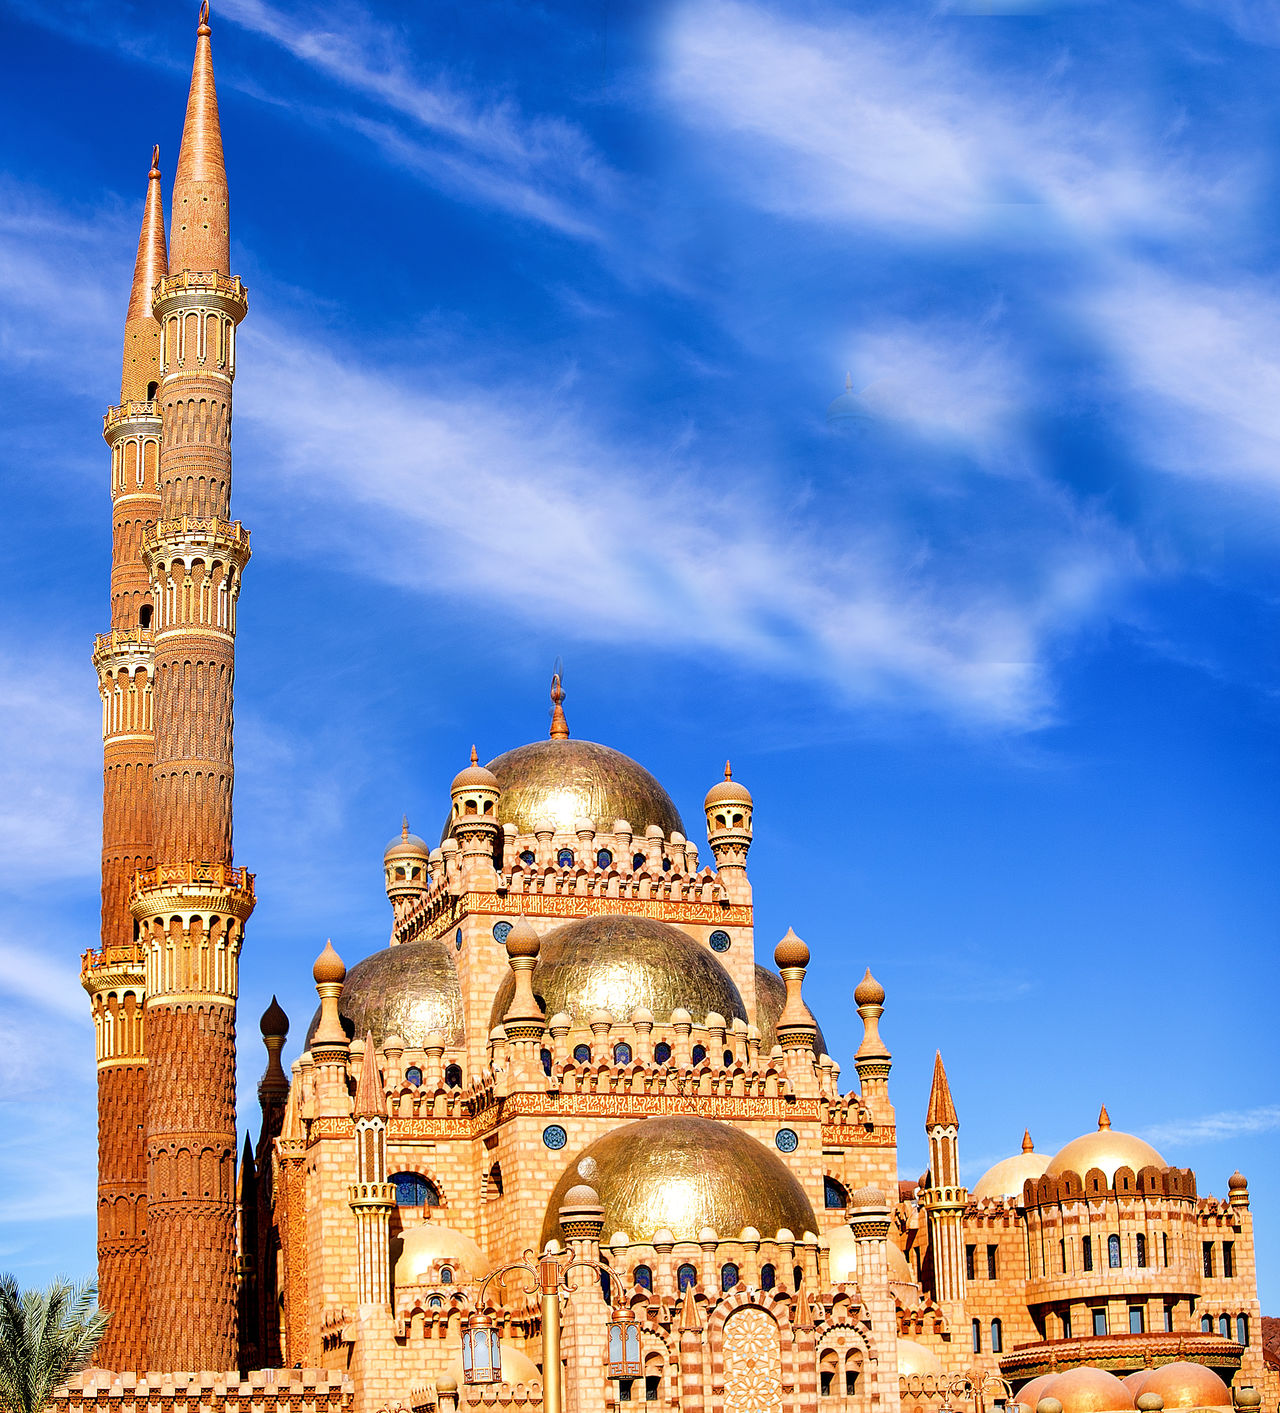 Arquitecture Blue Sky And Gold Copper Art Copperhead Egypt Gold Mosque Mosque New Mosque Old Market Mosque Oldmarket Sharmelsheikh South Sinai Travel First Eyeem Photo